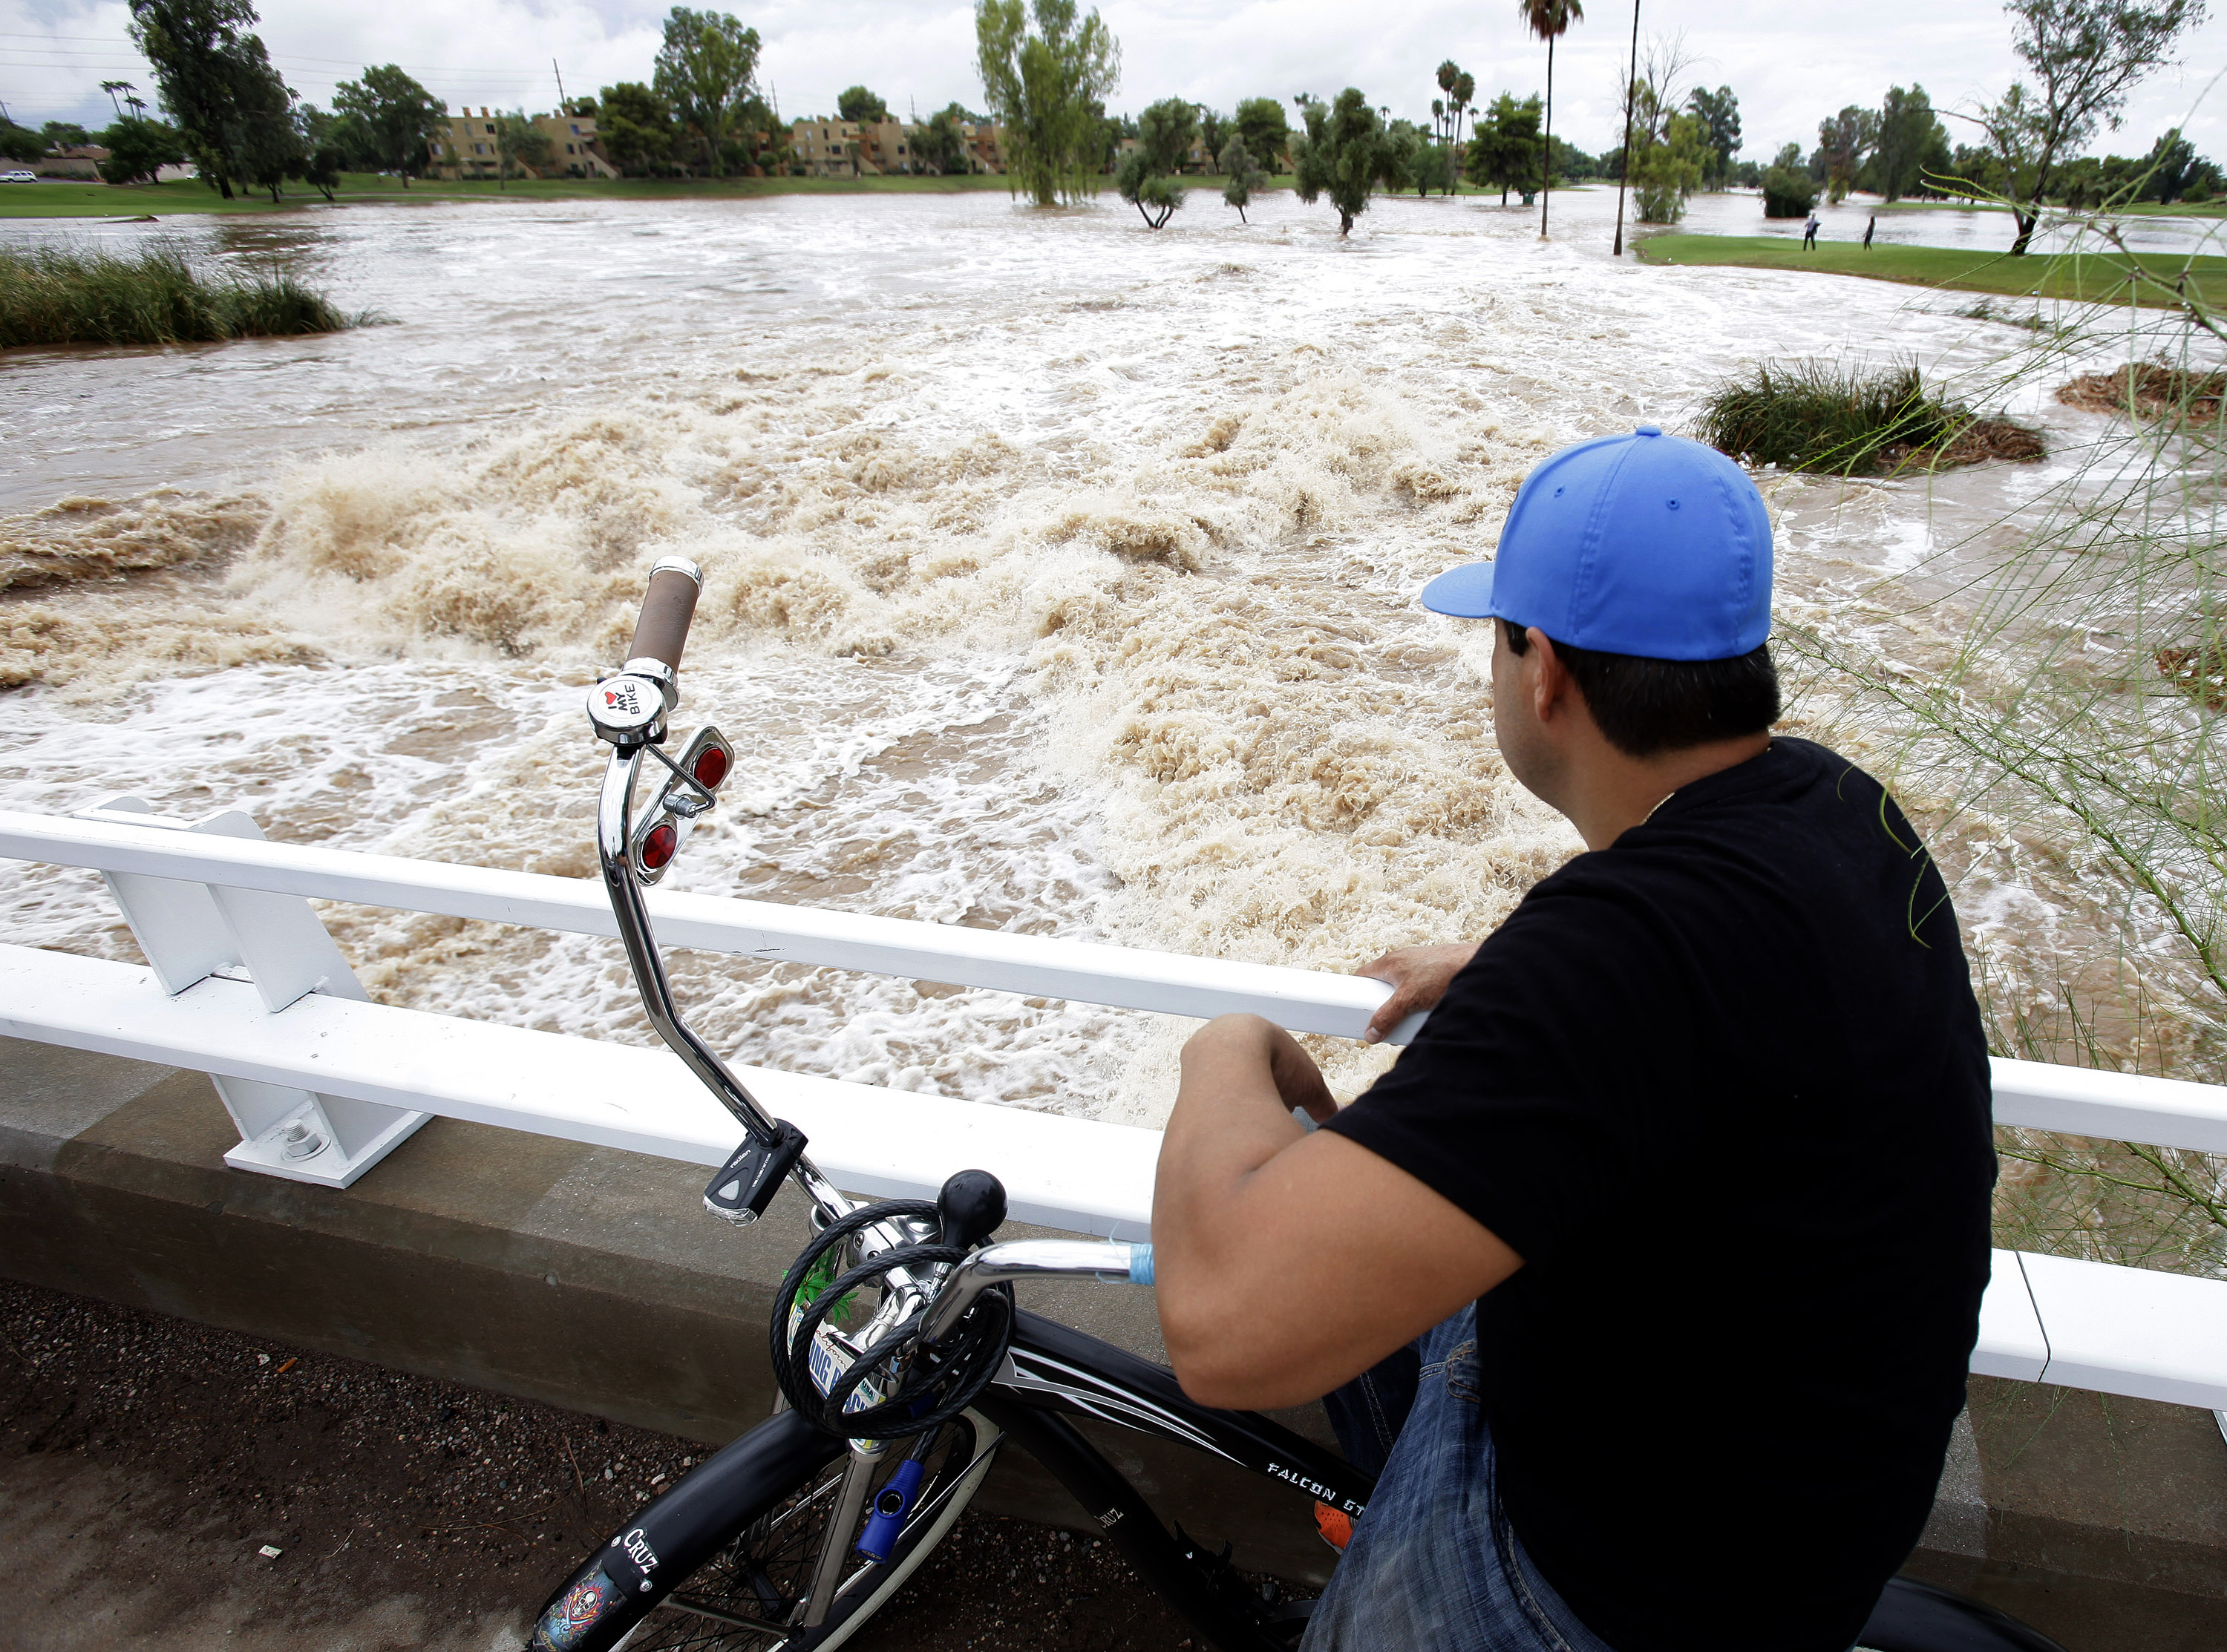 Record rainfall leads to deadly flooding in Arizona - CBS News